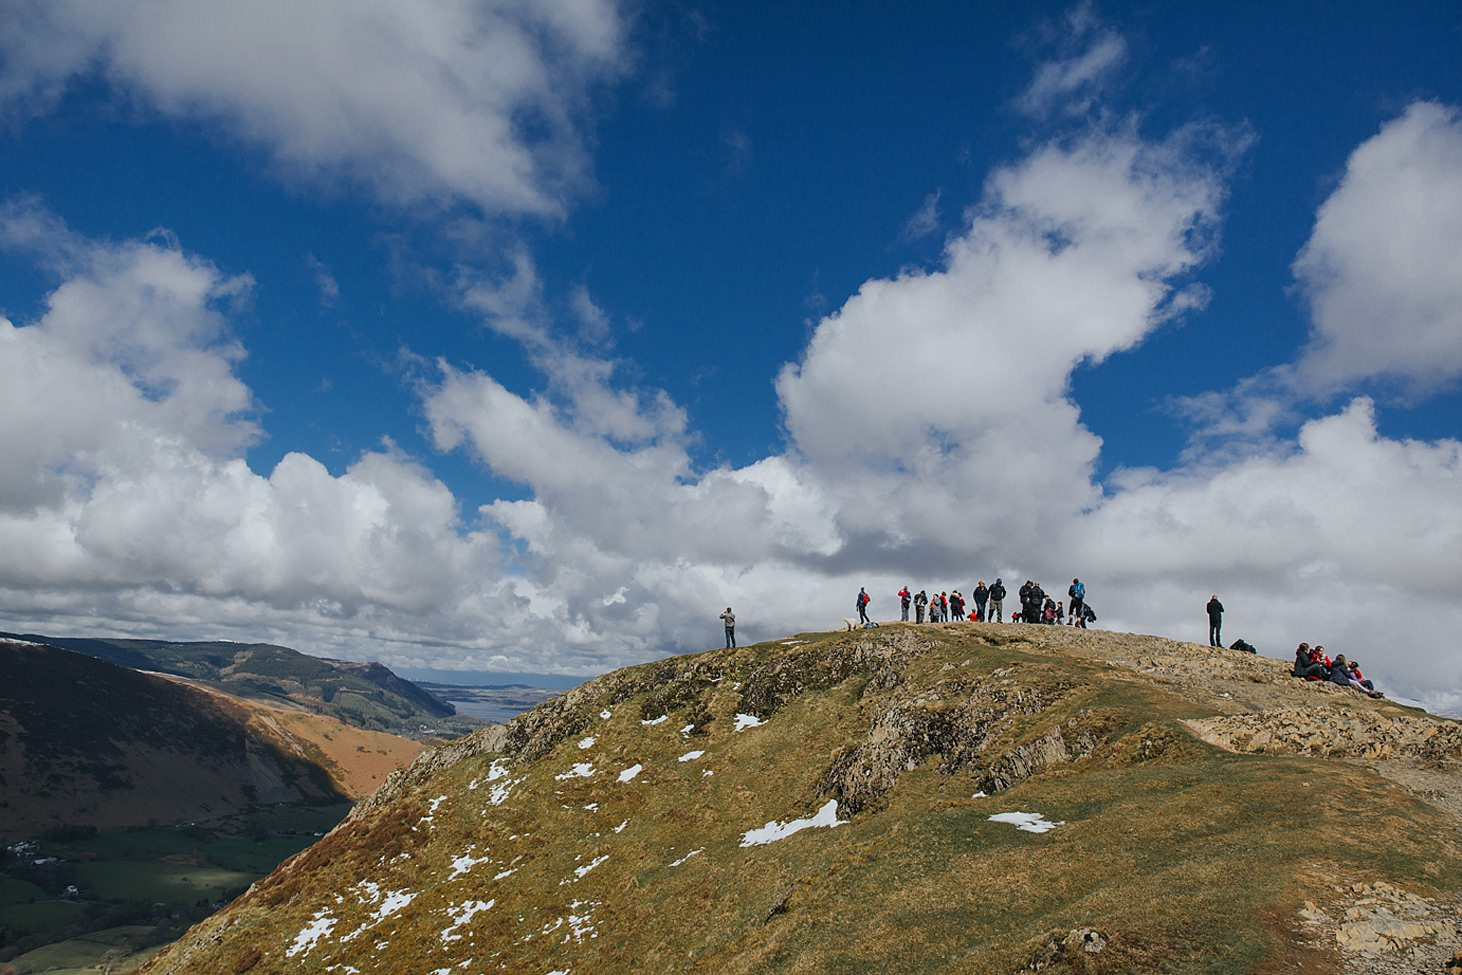 lake district travel photography on top of fells